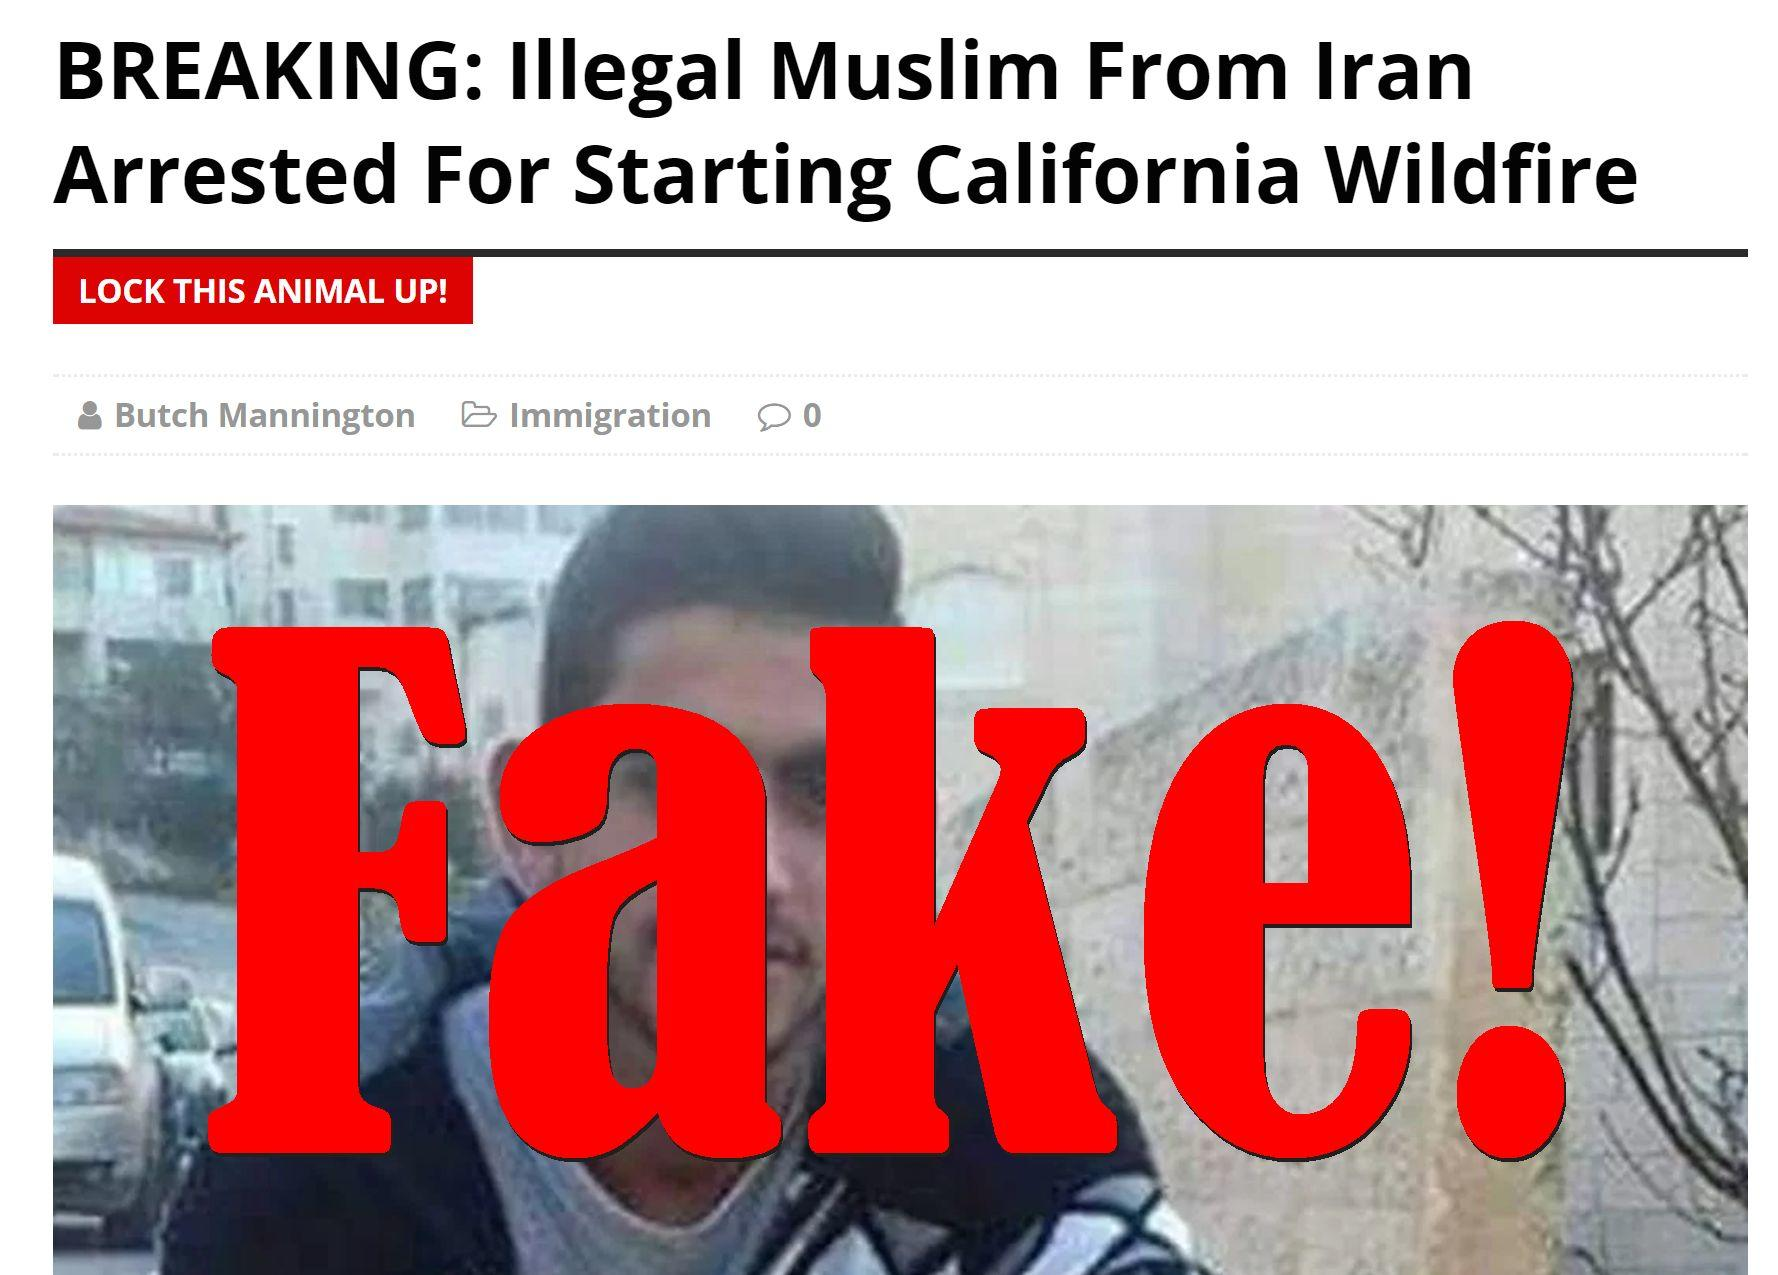 Fake News: NO Illegal Muslim From Iran Arrested For Starting California Wildfire